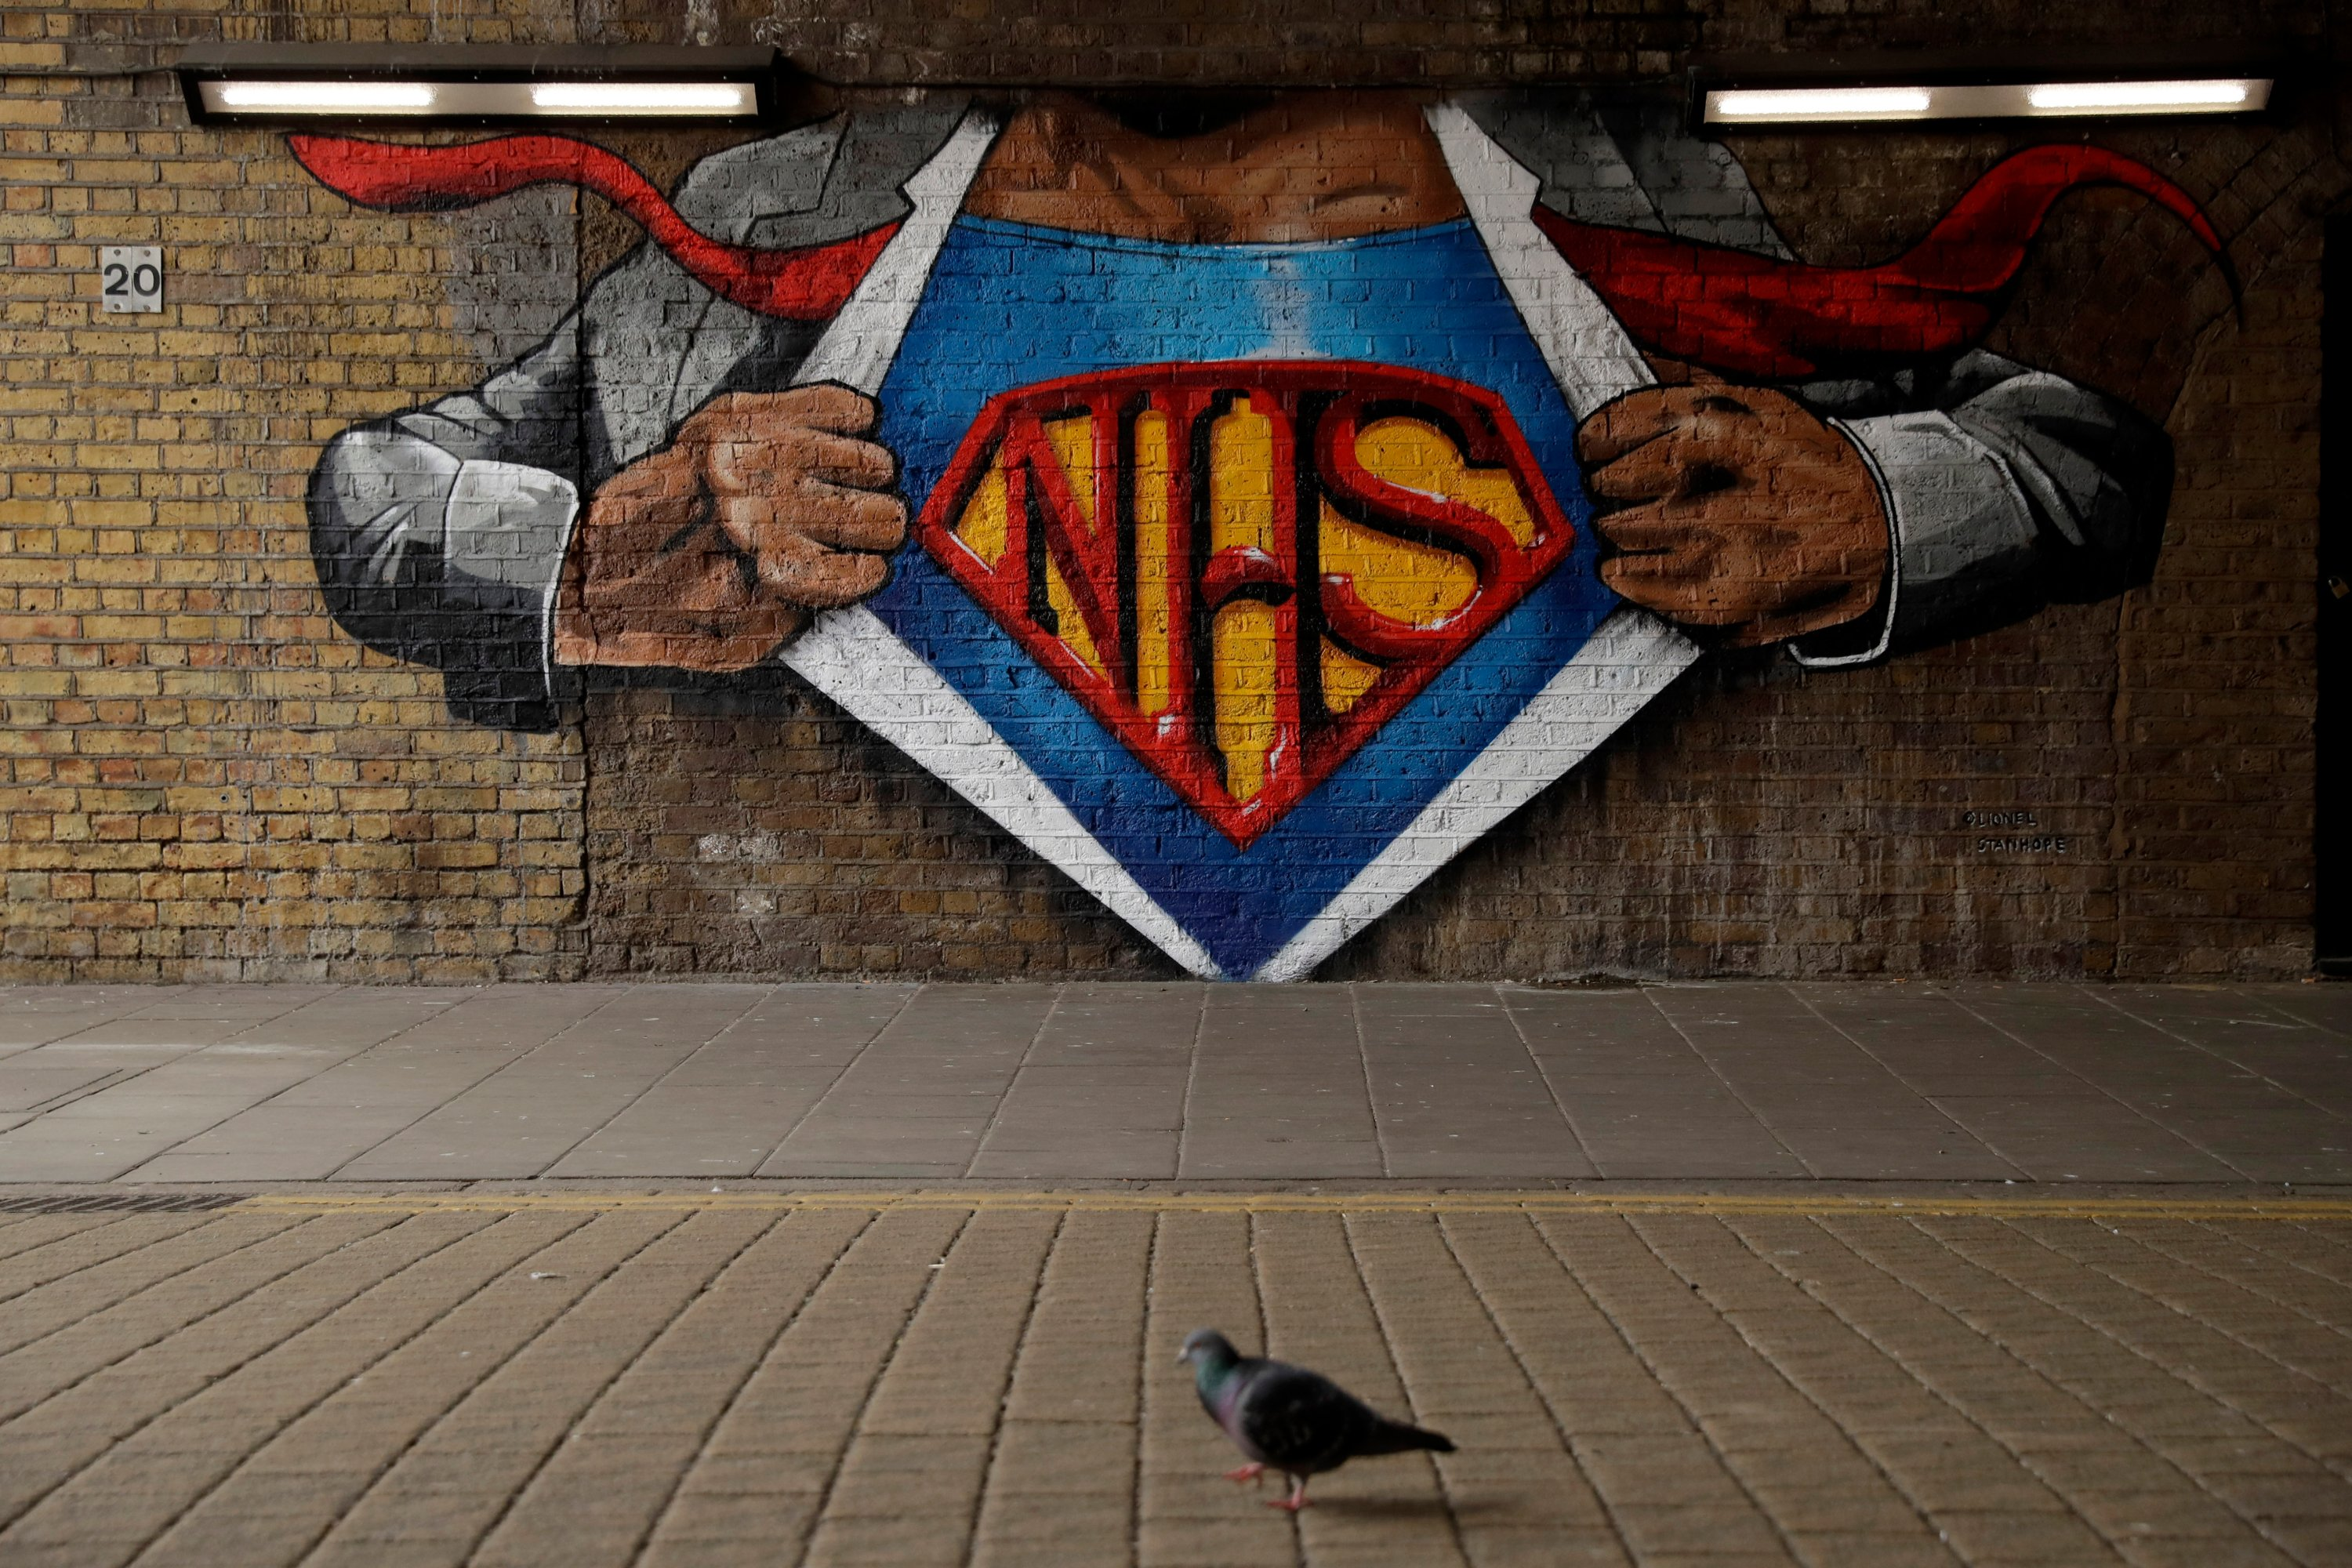 The NHS (National Health Service) Superman design mural by street artist Lionel Stanhope during the coronavirus lockdown, in the Waterloo area of London, Britain, May 3, 2020. (AP Photo)